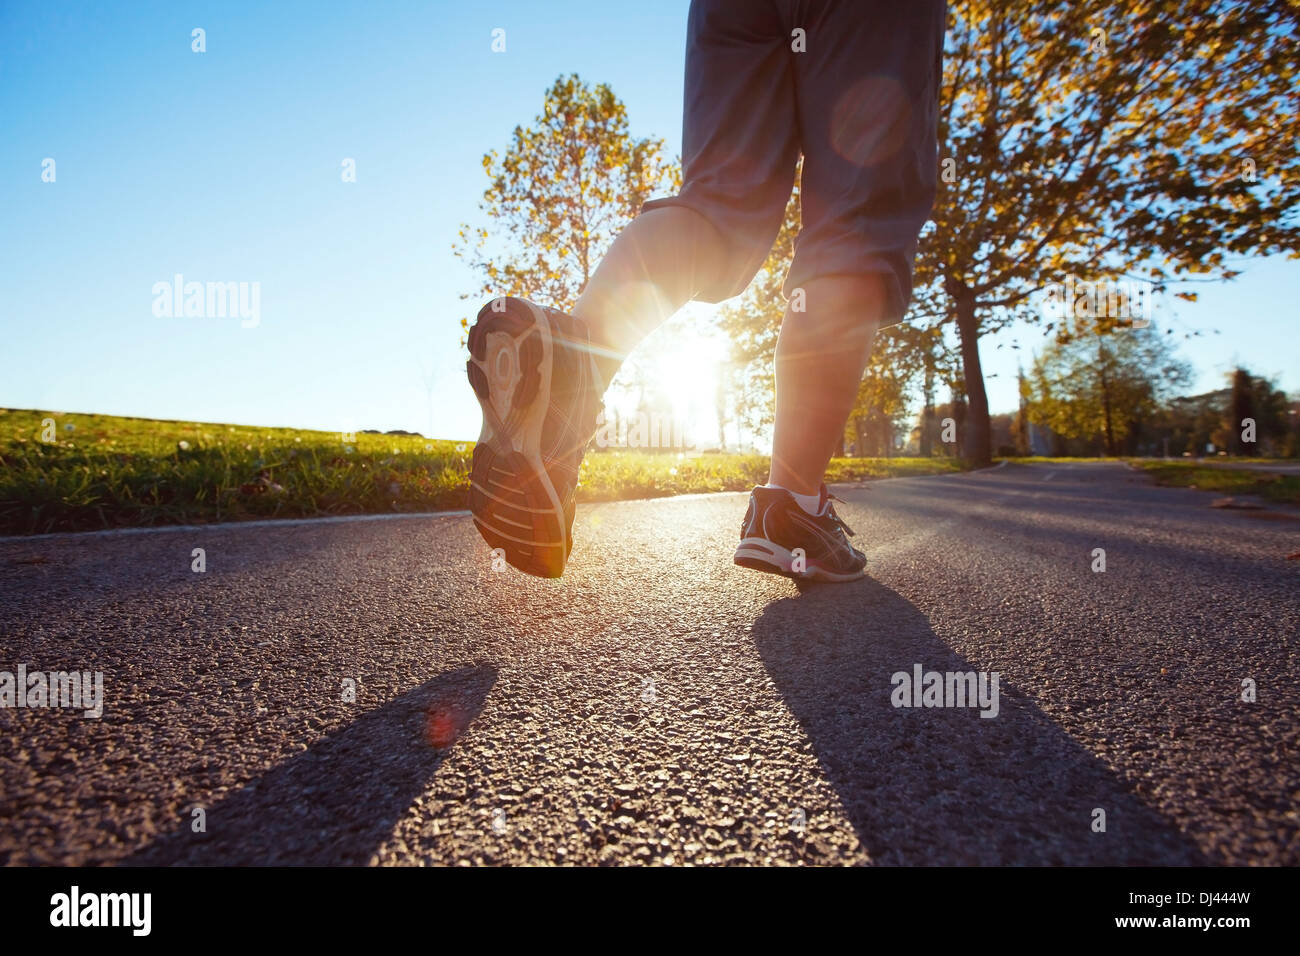 jogging - Stock Image